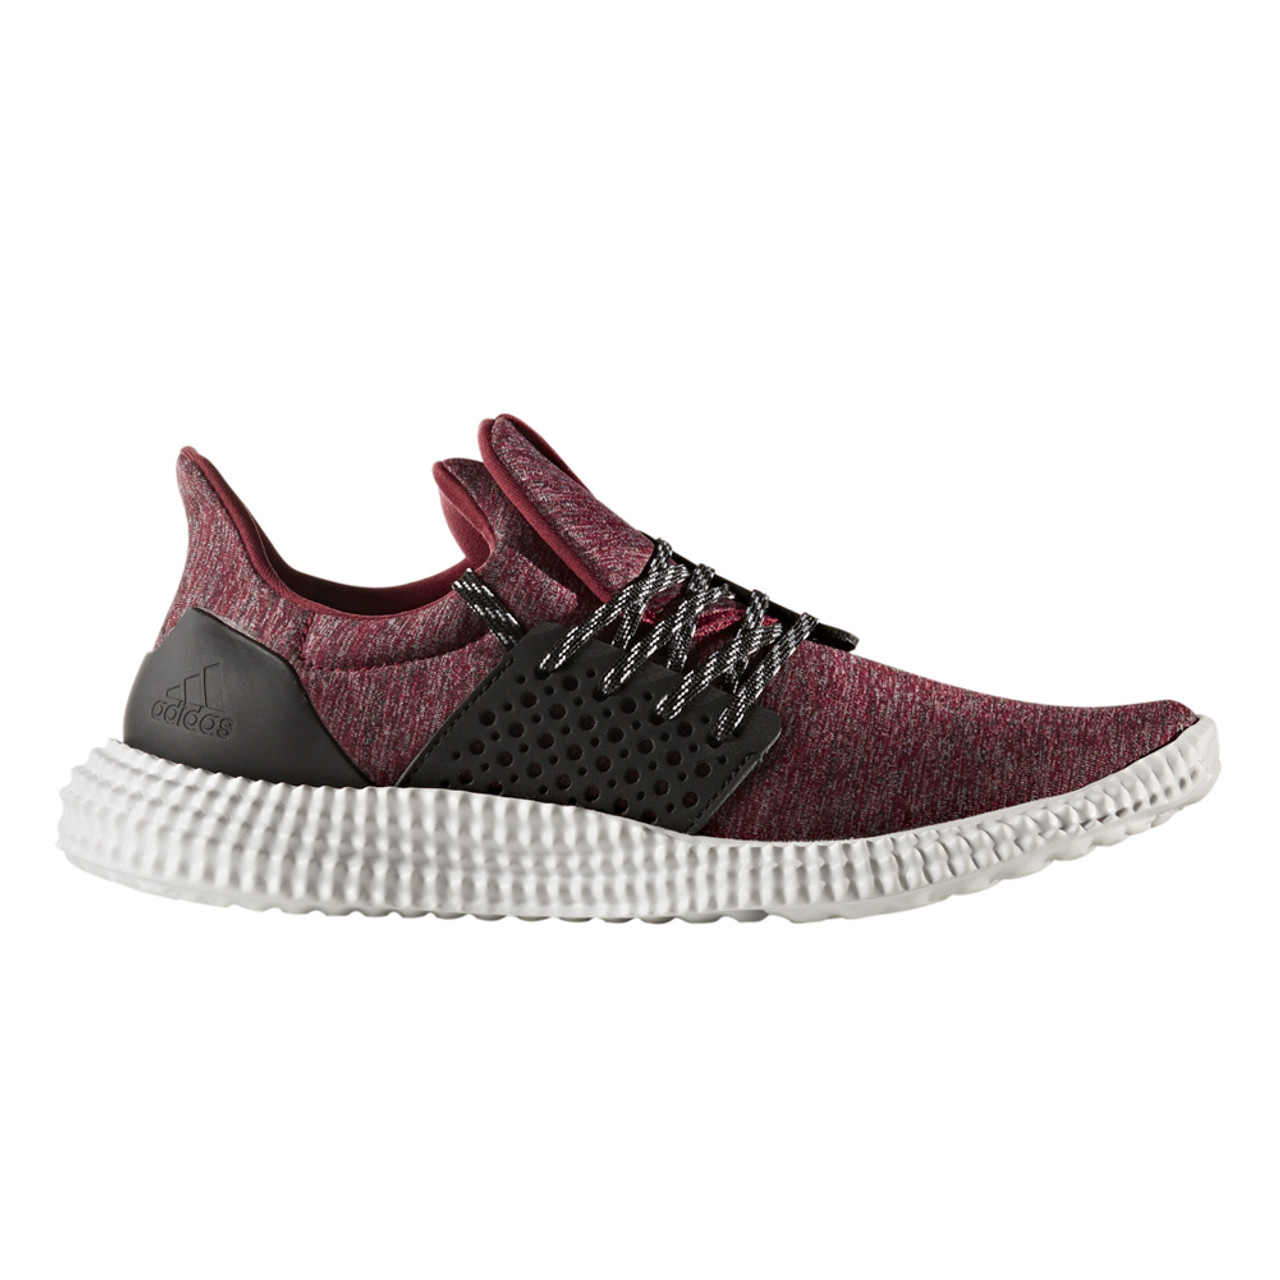 af1e3e84763c Adidas Women s Athletics 24 7 Cross Trainer Ruby Blk - Shop now   Shoolu